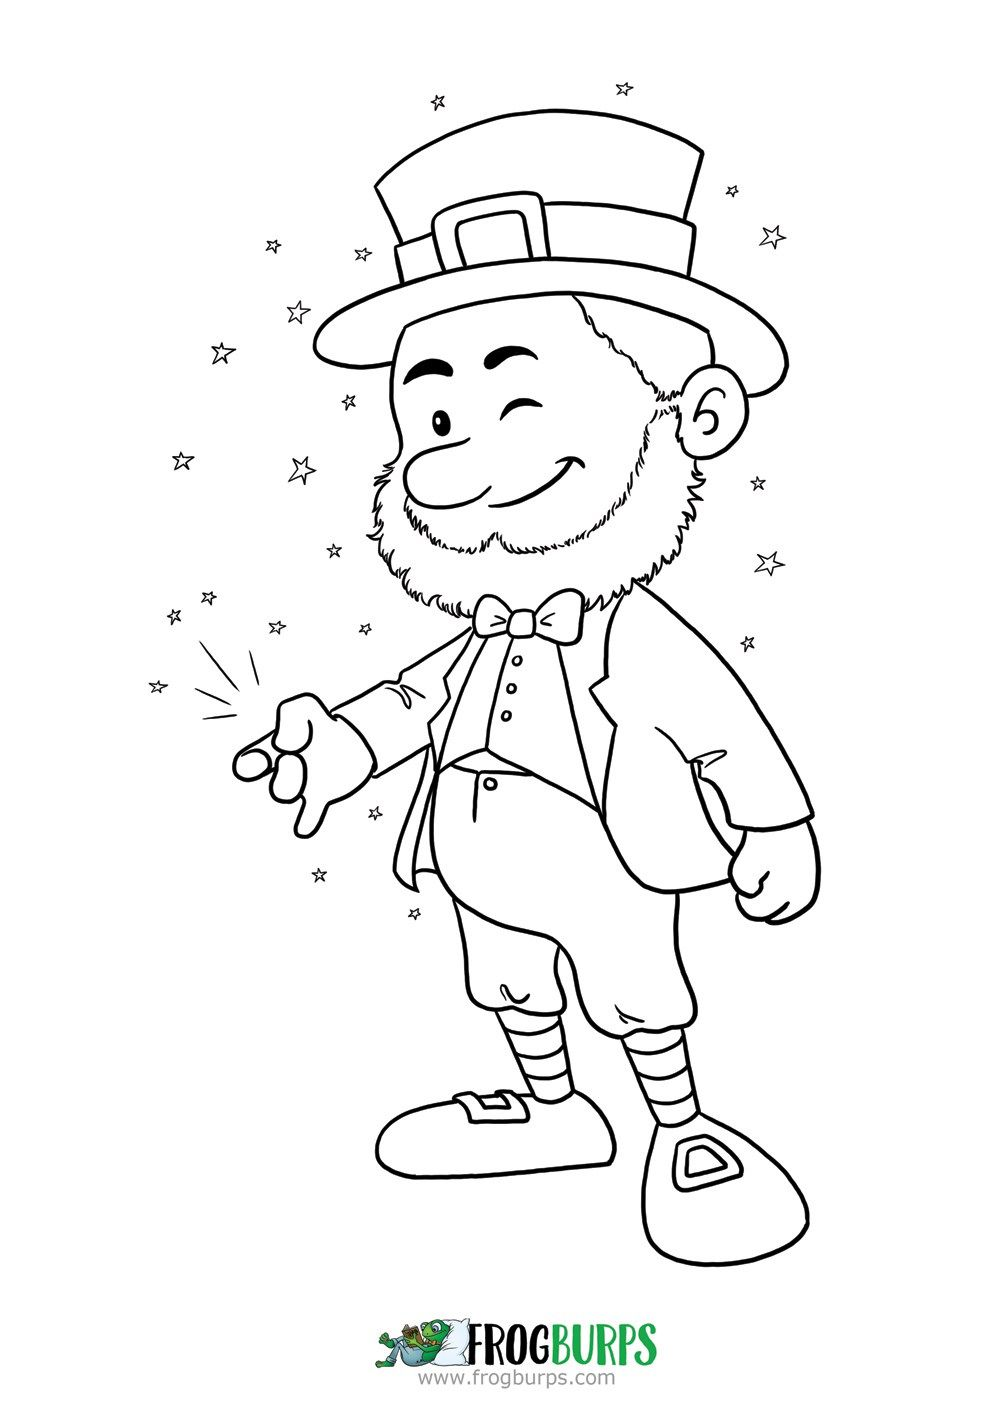 Leprechaun Fruit Coloring Pages Coloring Pages Leprechaun